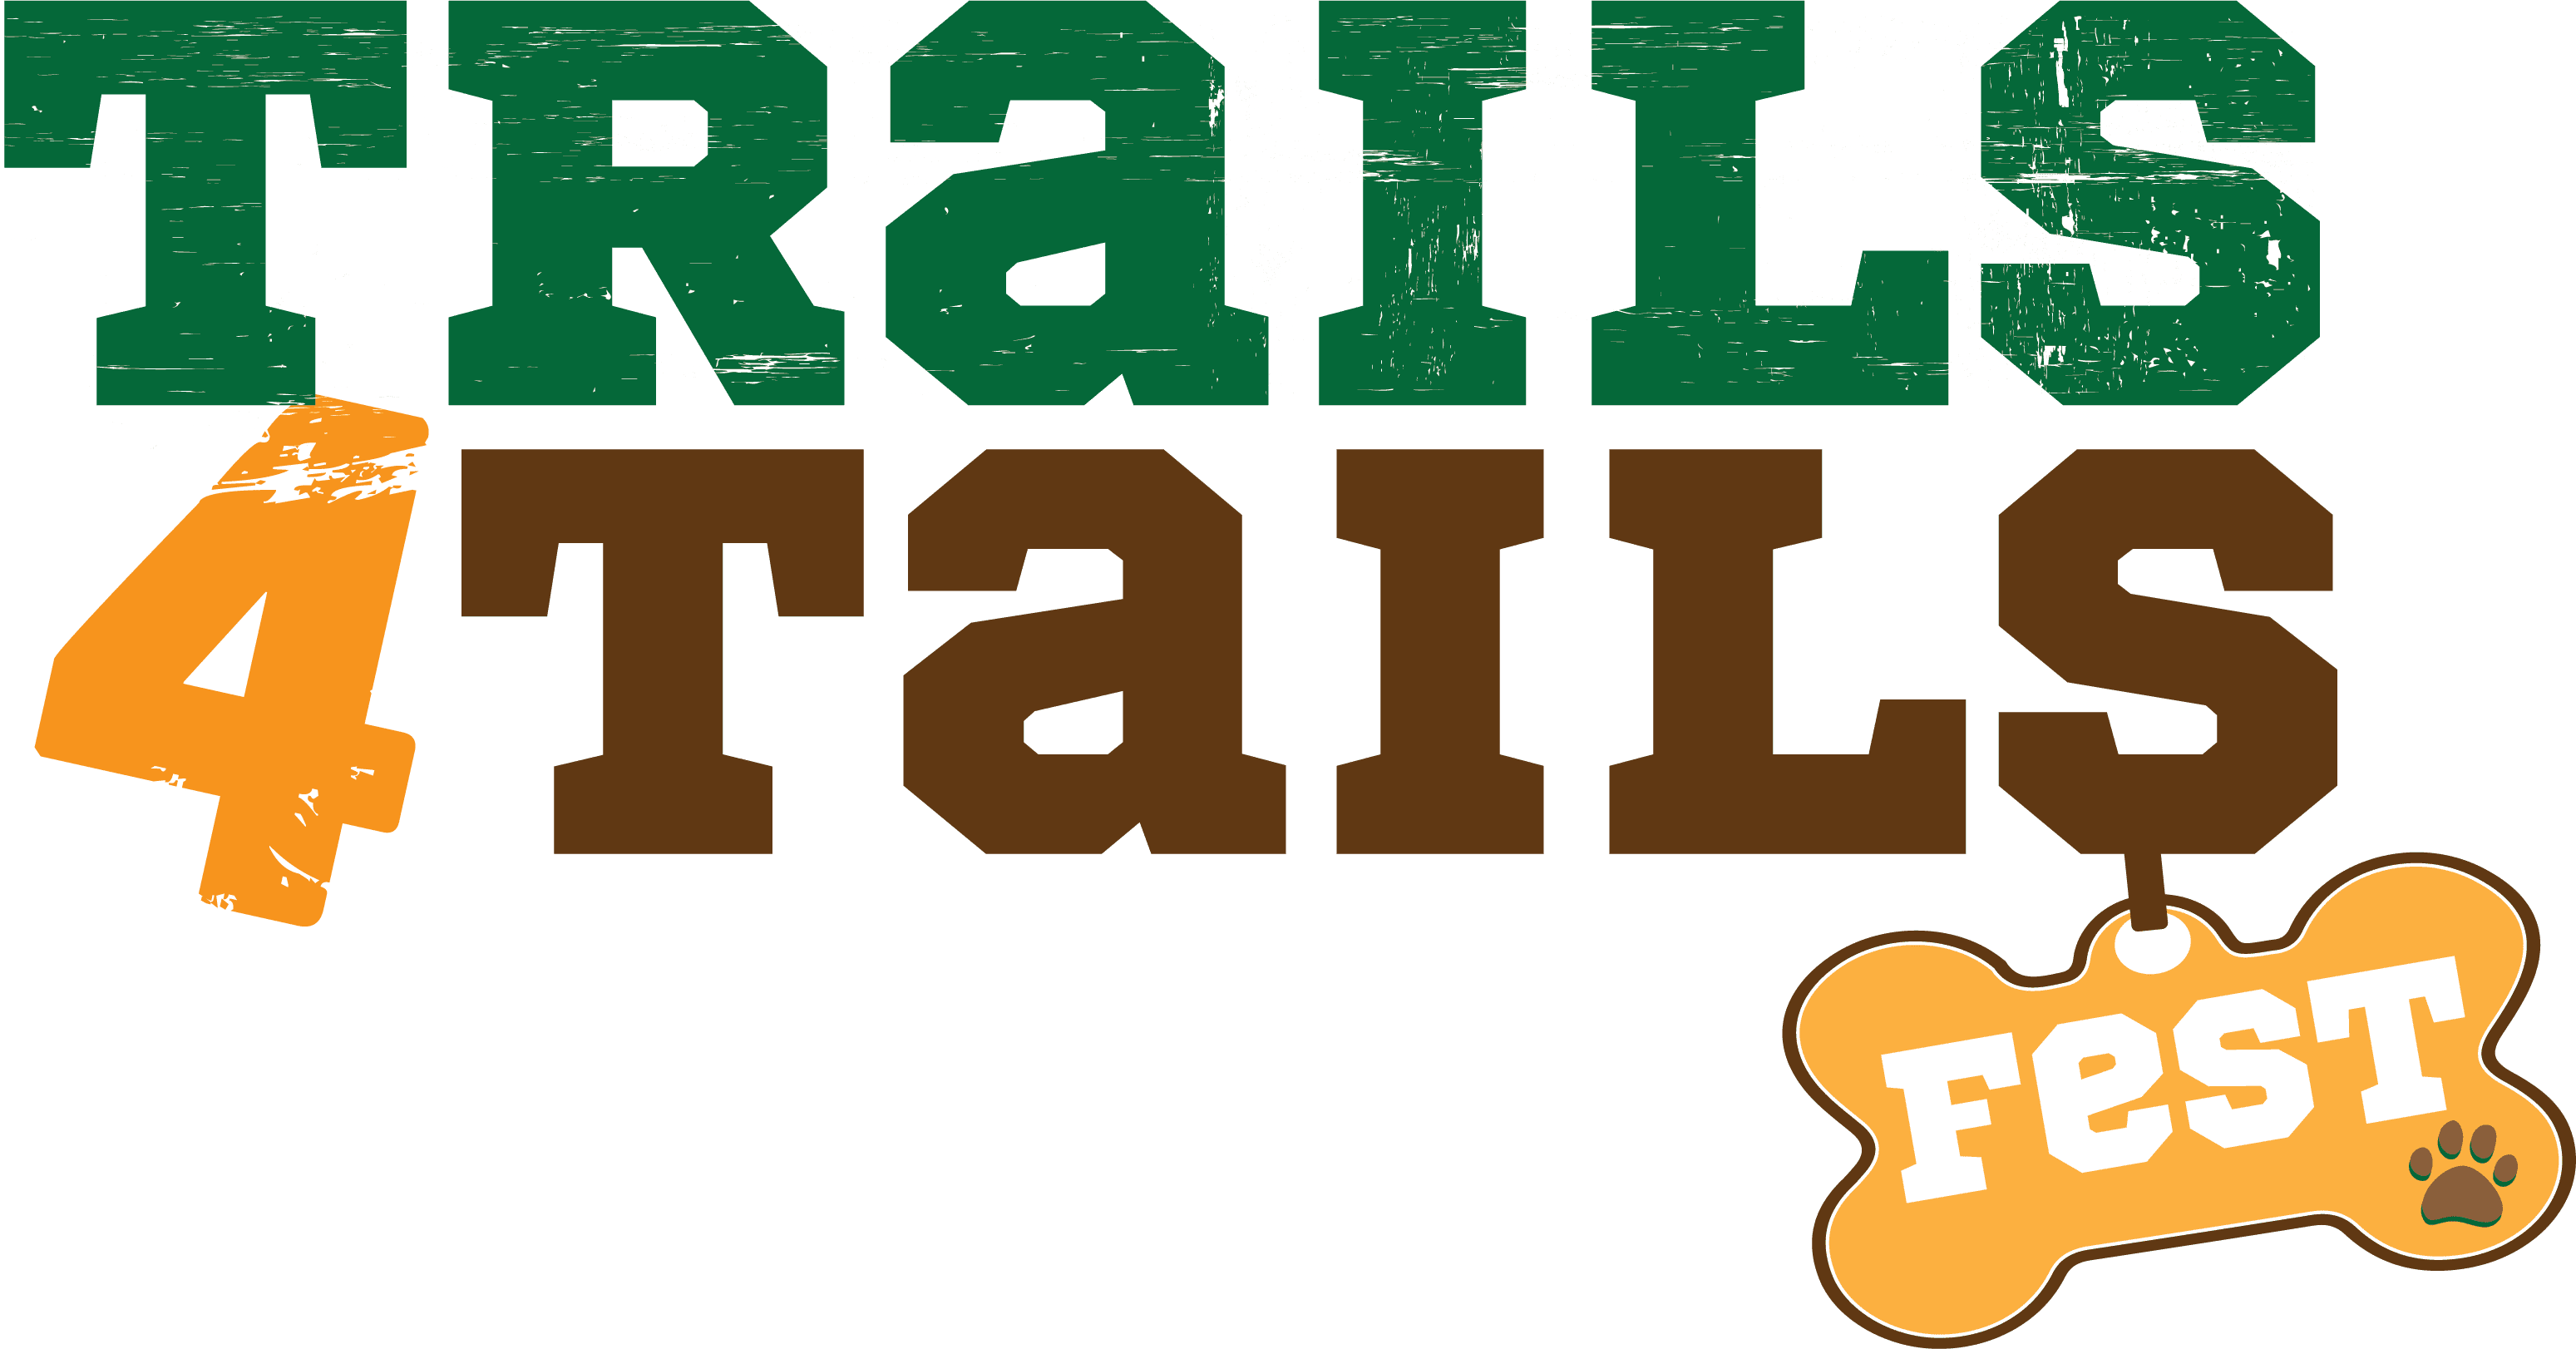 Trails4Tails Fest logo on RaceRaves